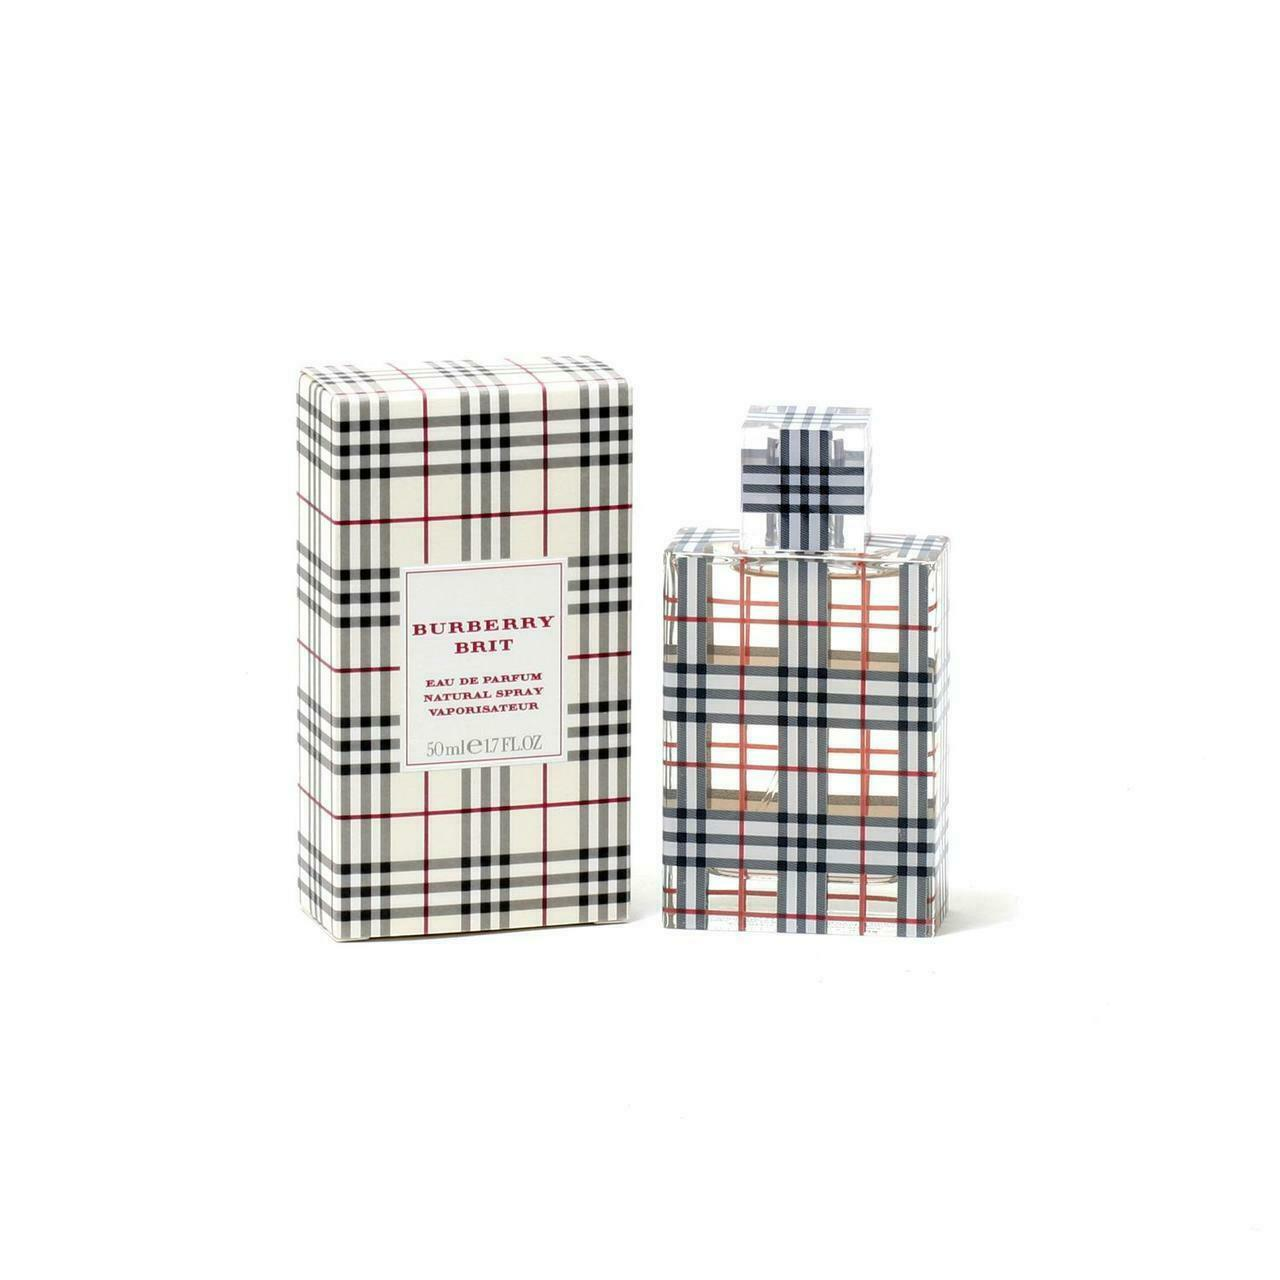 Primary image for Burberry Brit Ladies - Edp Spray 1.7 OZ